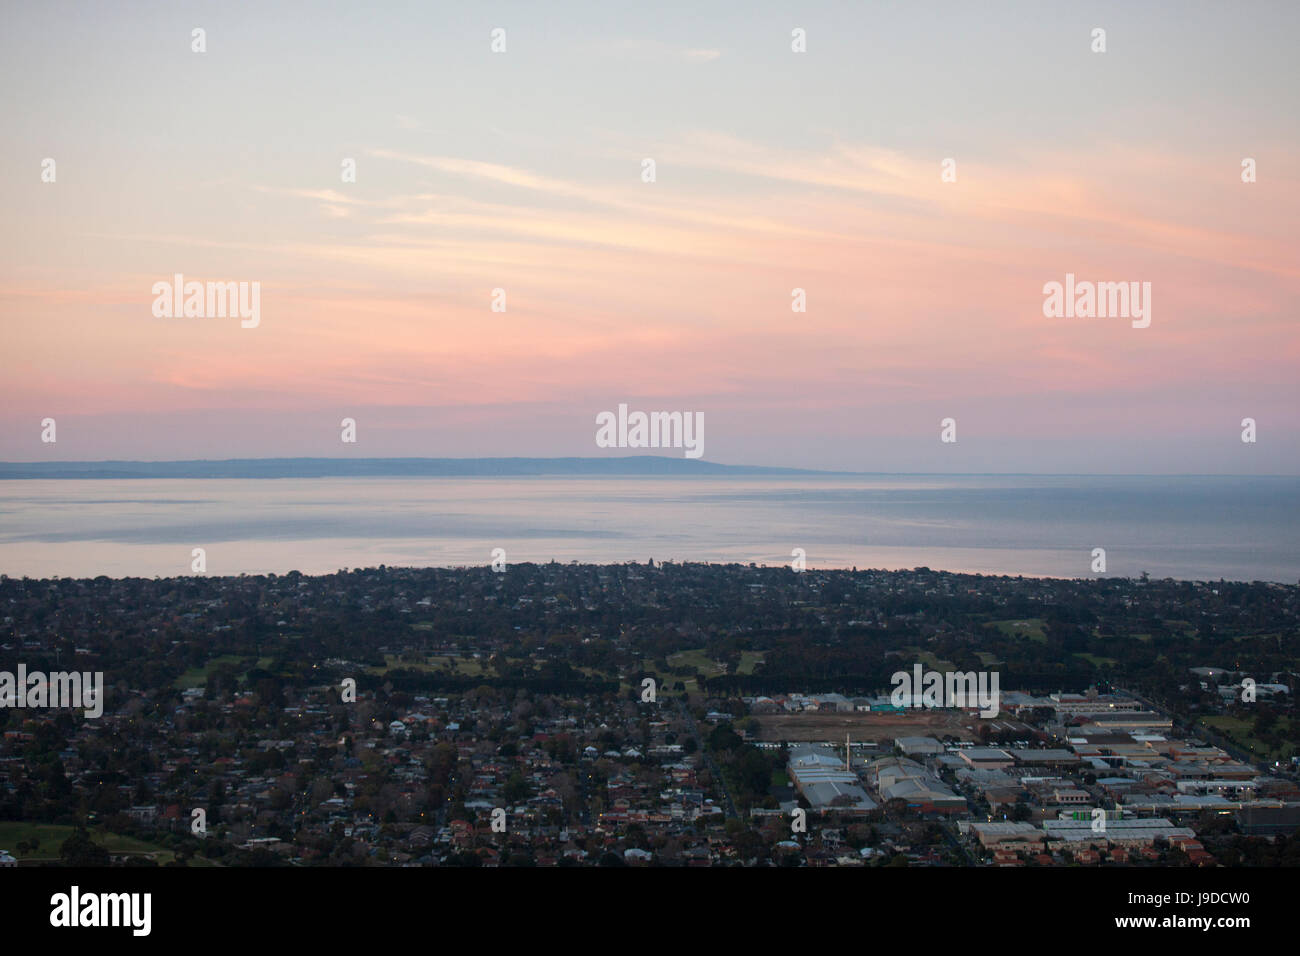 Aerial view of city in the dawn. - Stock Image